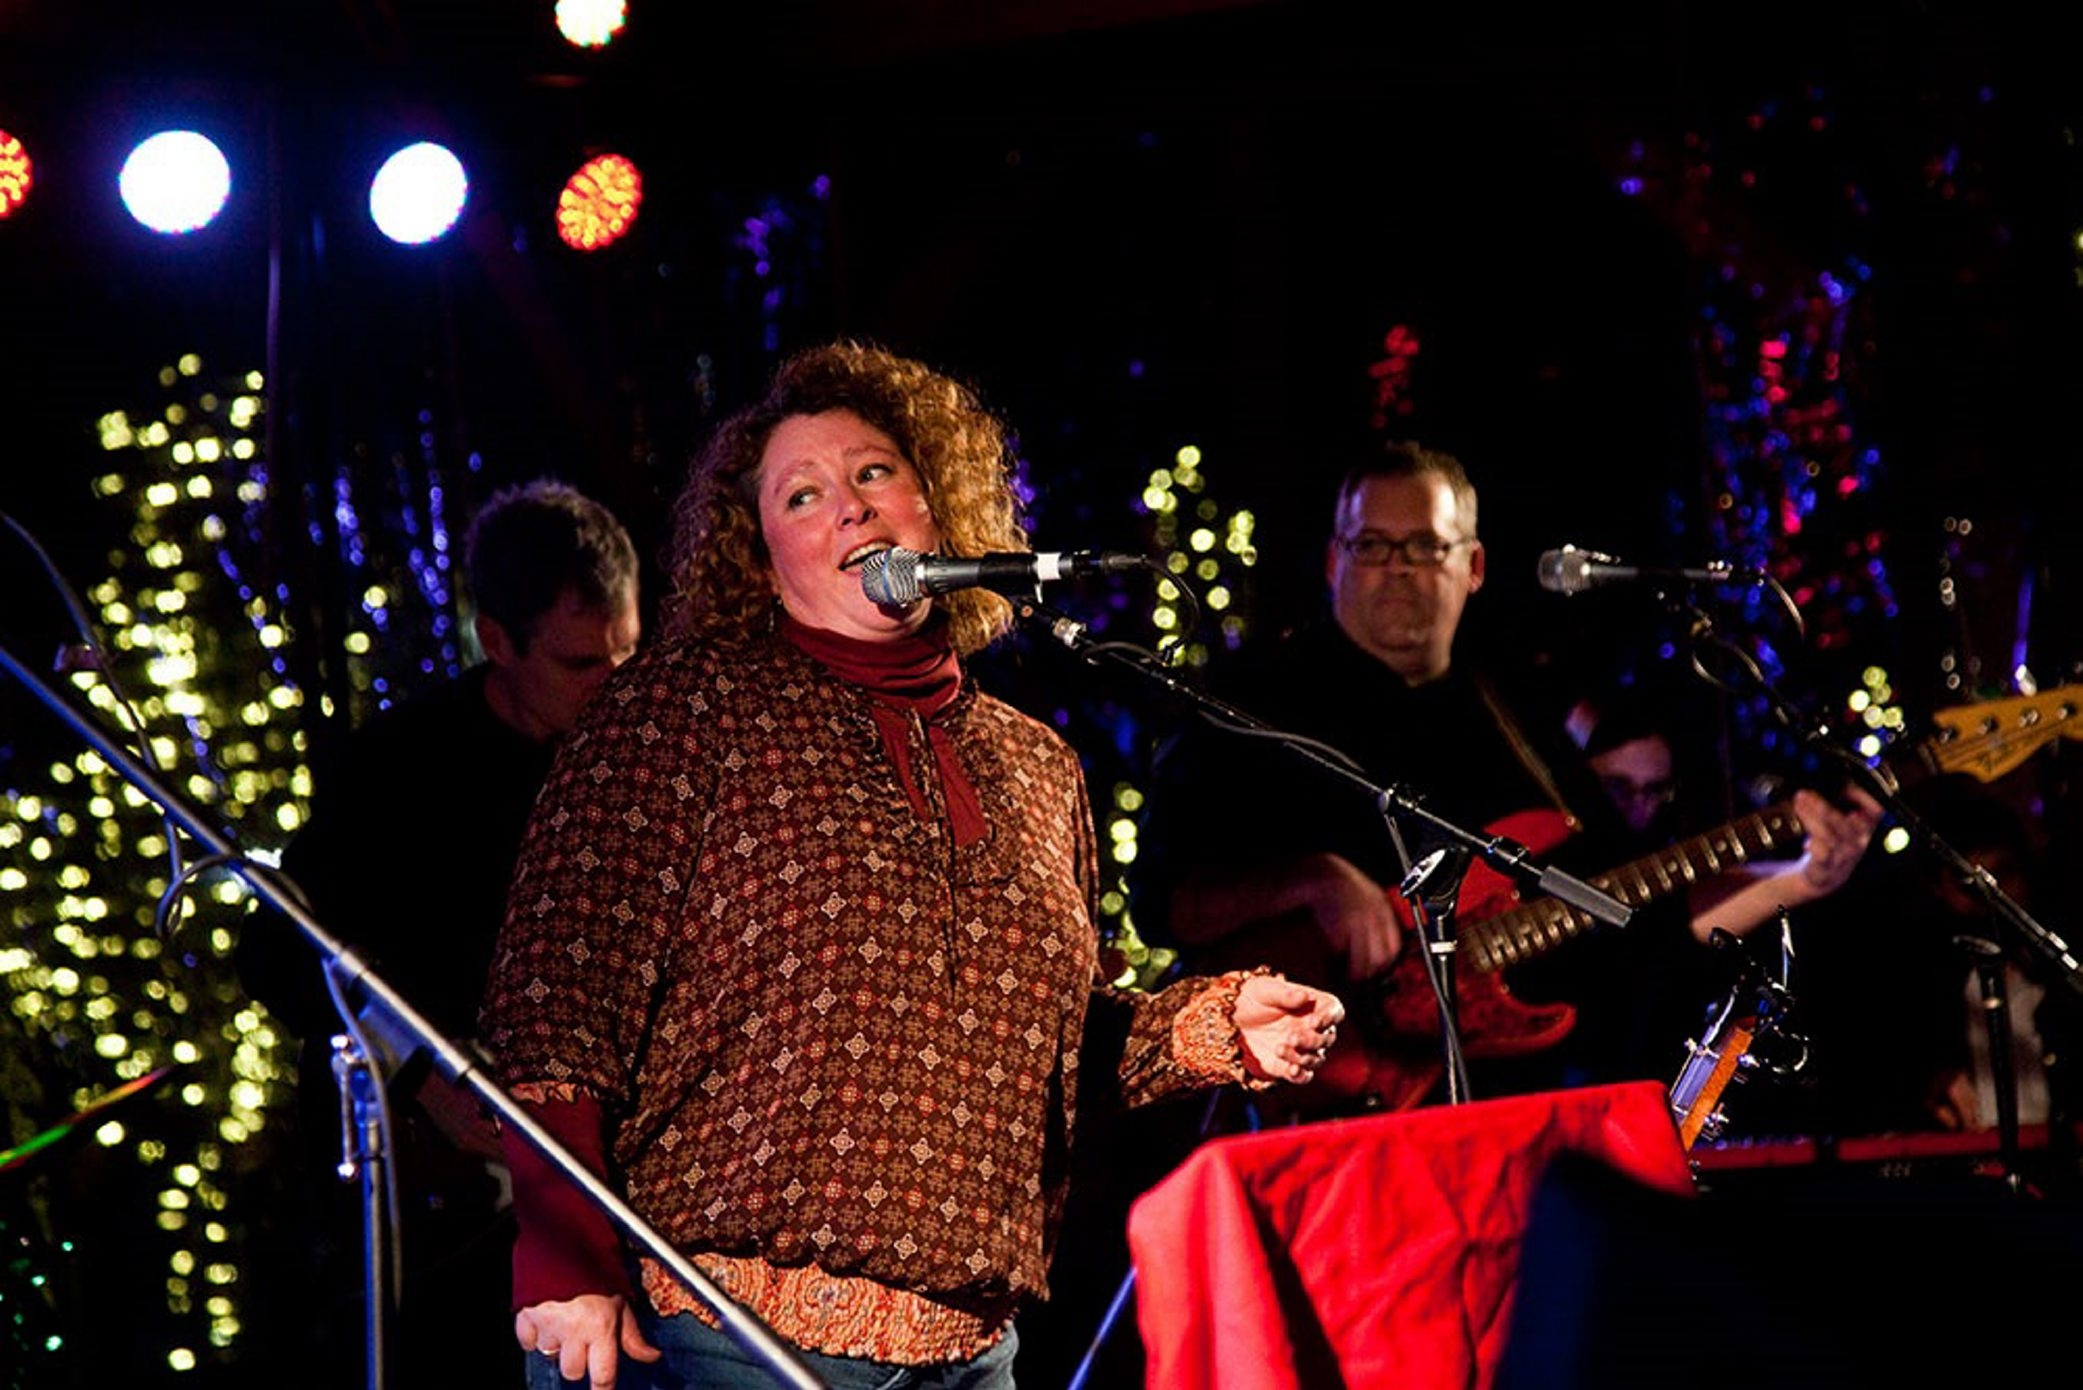 Robot Holiday will headline the fourth annual Holiday Live at Larkin on Dec. 4.